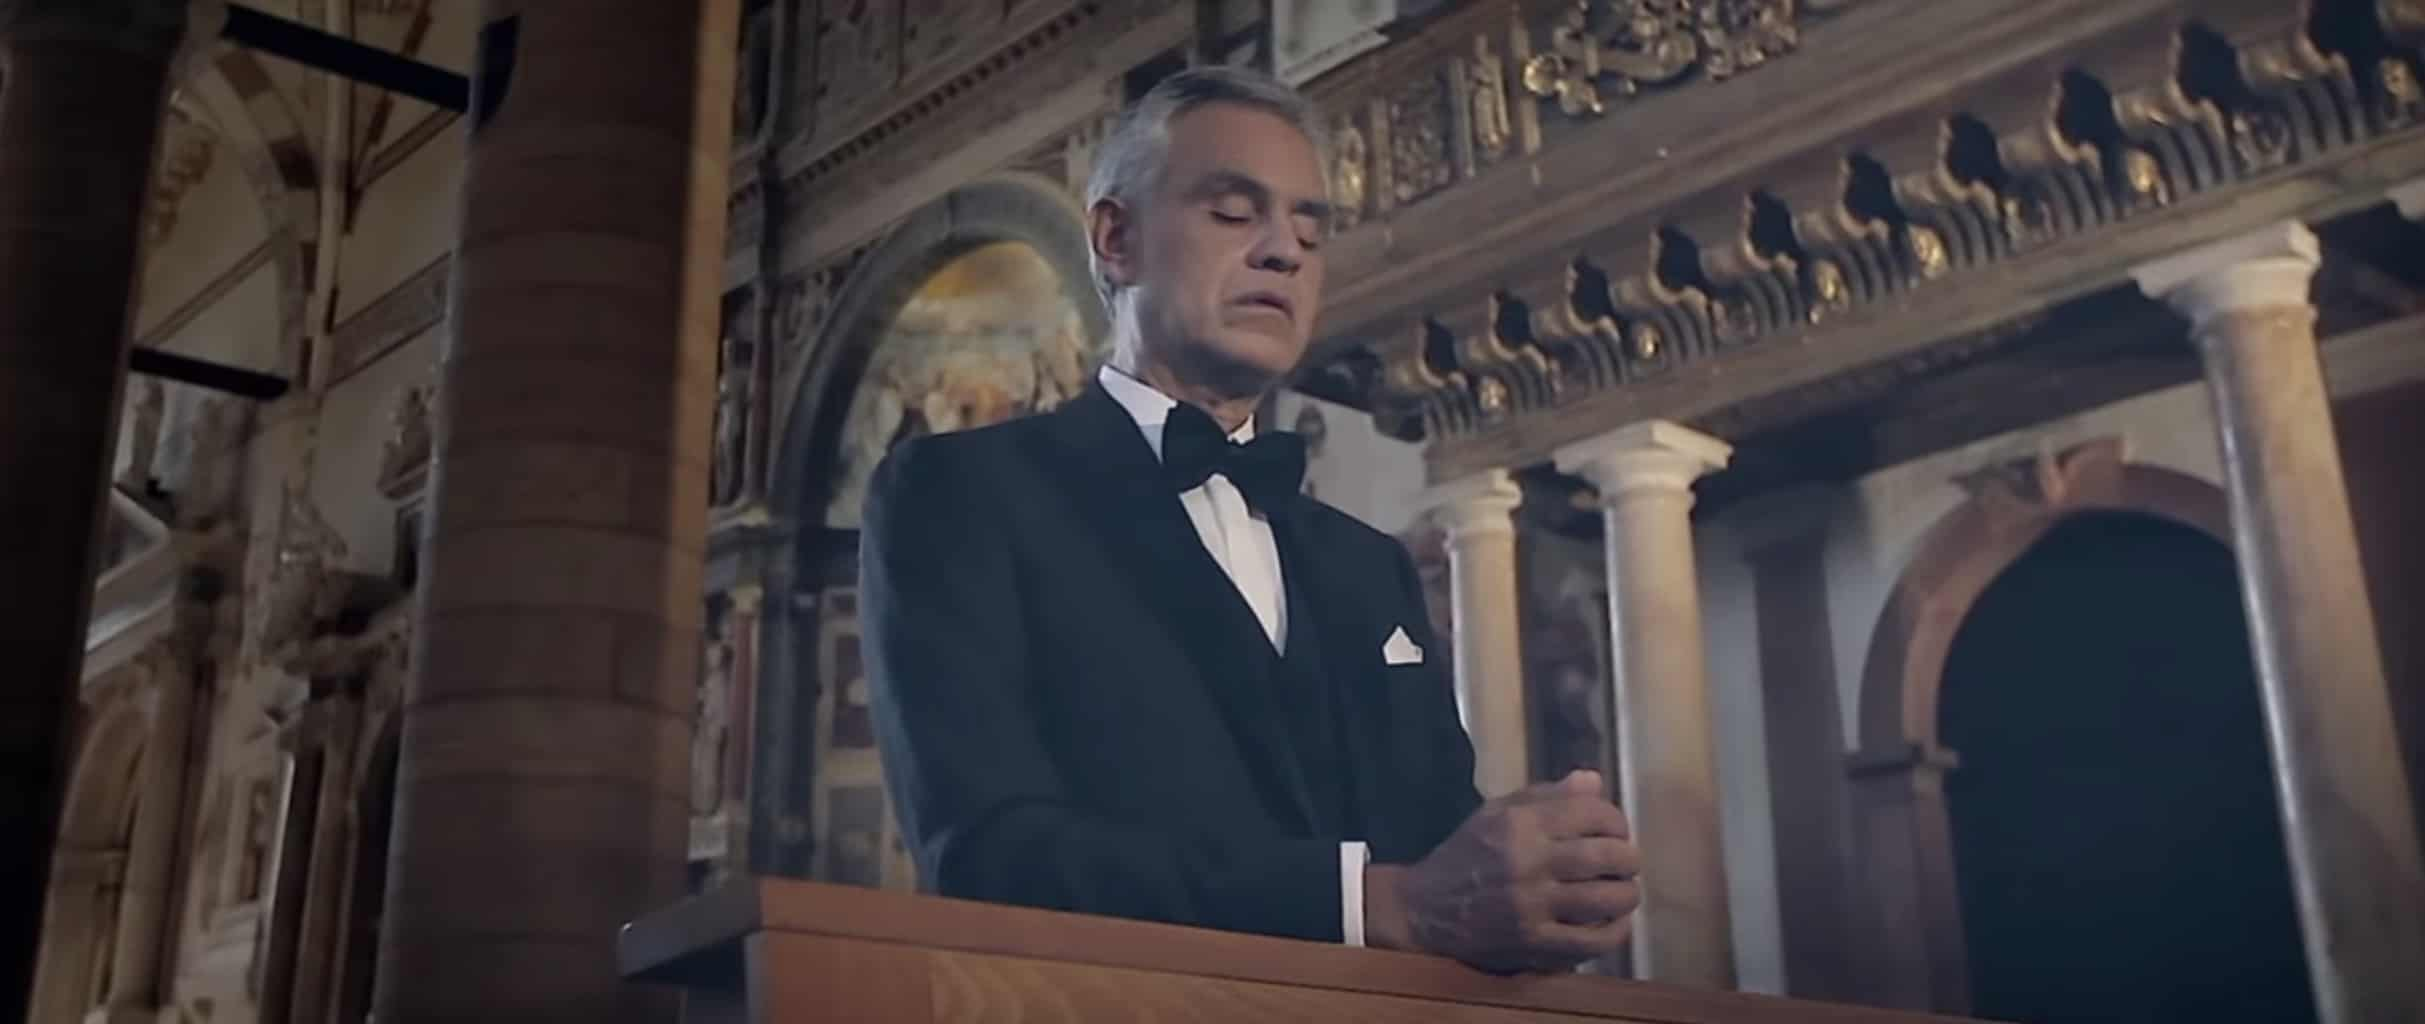 Andrea Bocelli and Aida Garifullina sing 'Ave Maria Petas' in a church